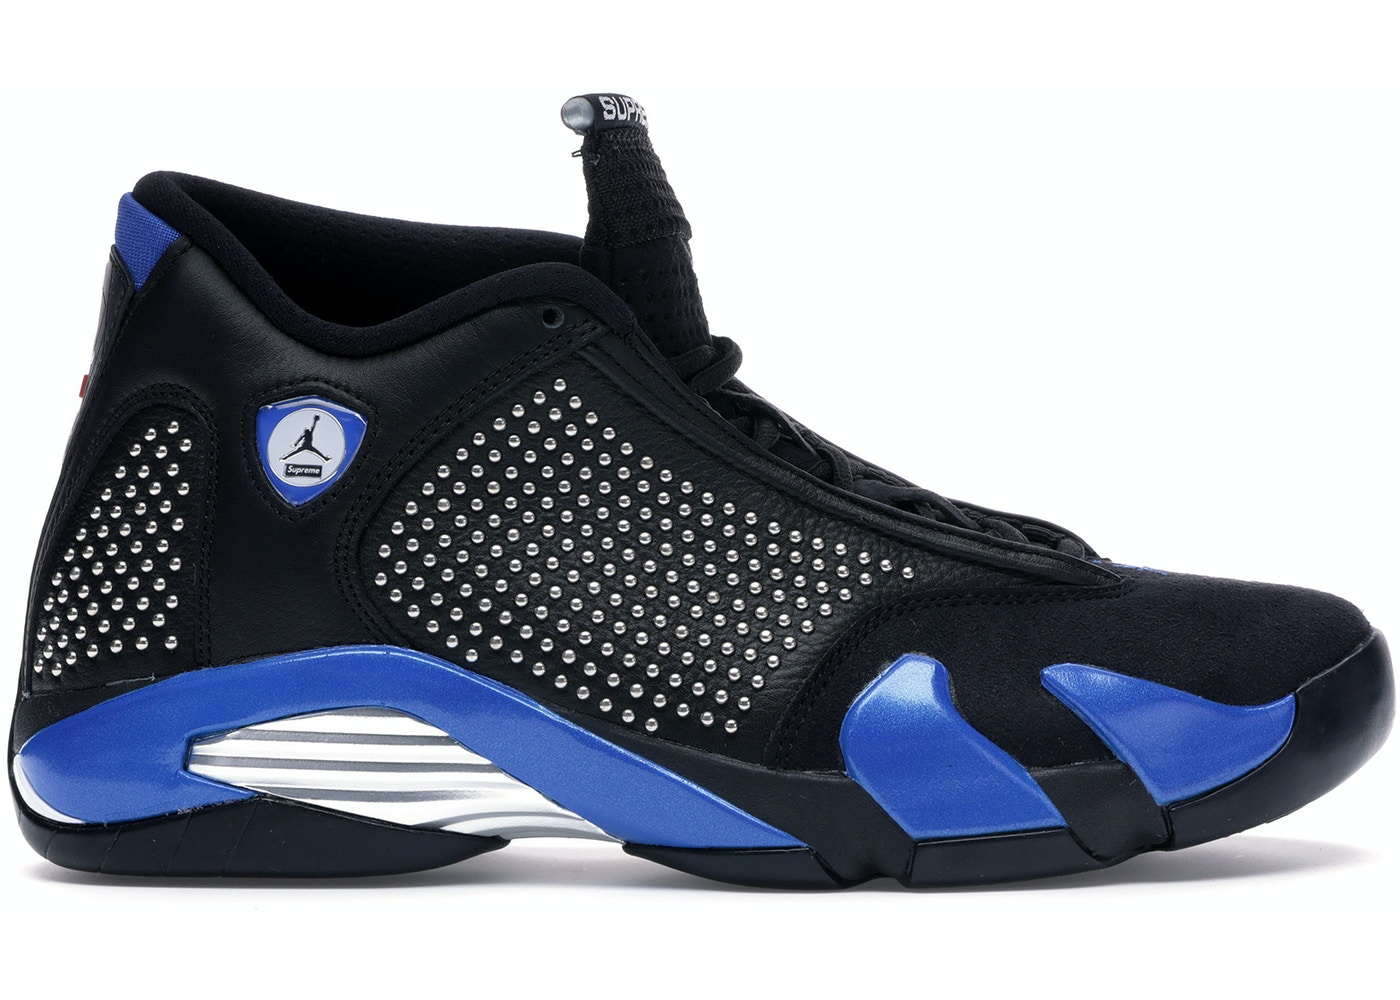 info for eb1d9 f0dce Buy Air Jordan 14 Shoes & Deadstock Sneakers